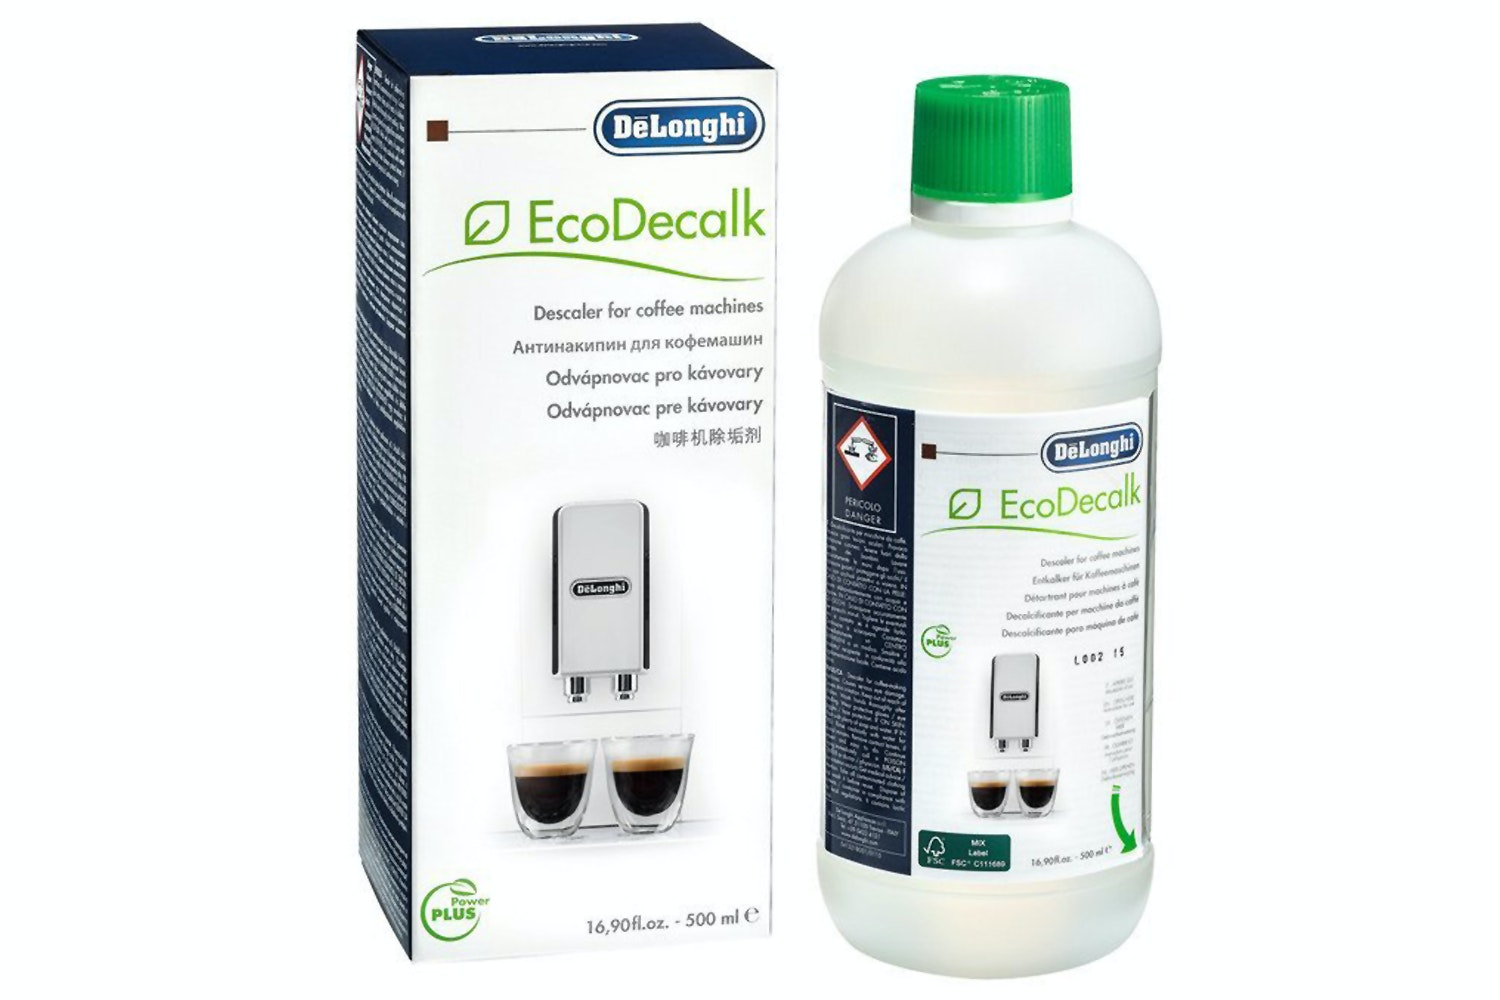 Delonghi Descaler Ecodecalk Solution